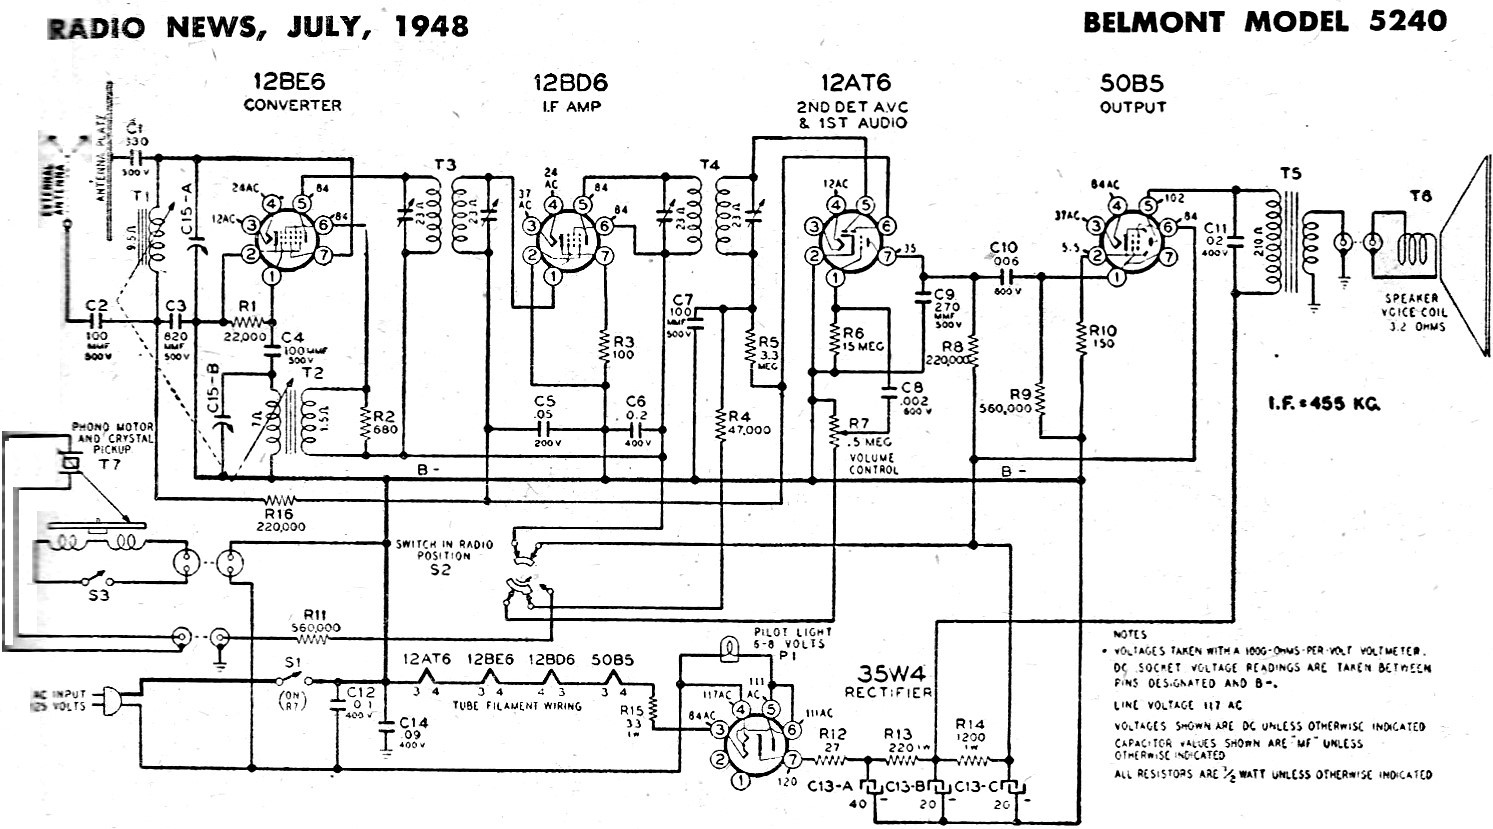 Belmont Model 5240 Schematic & Parts List, July 1948 Radio